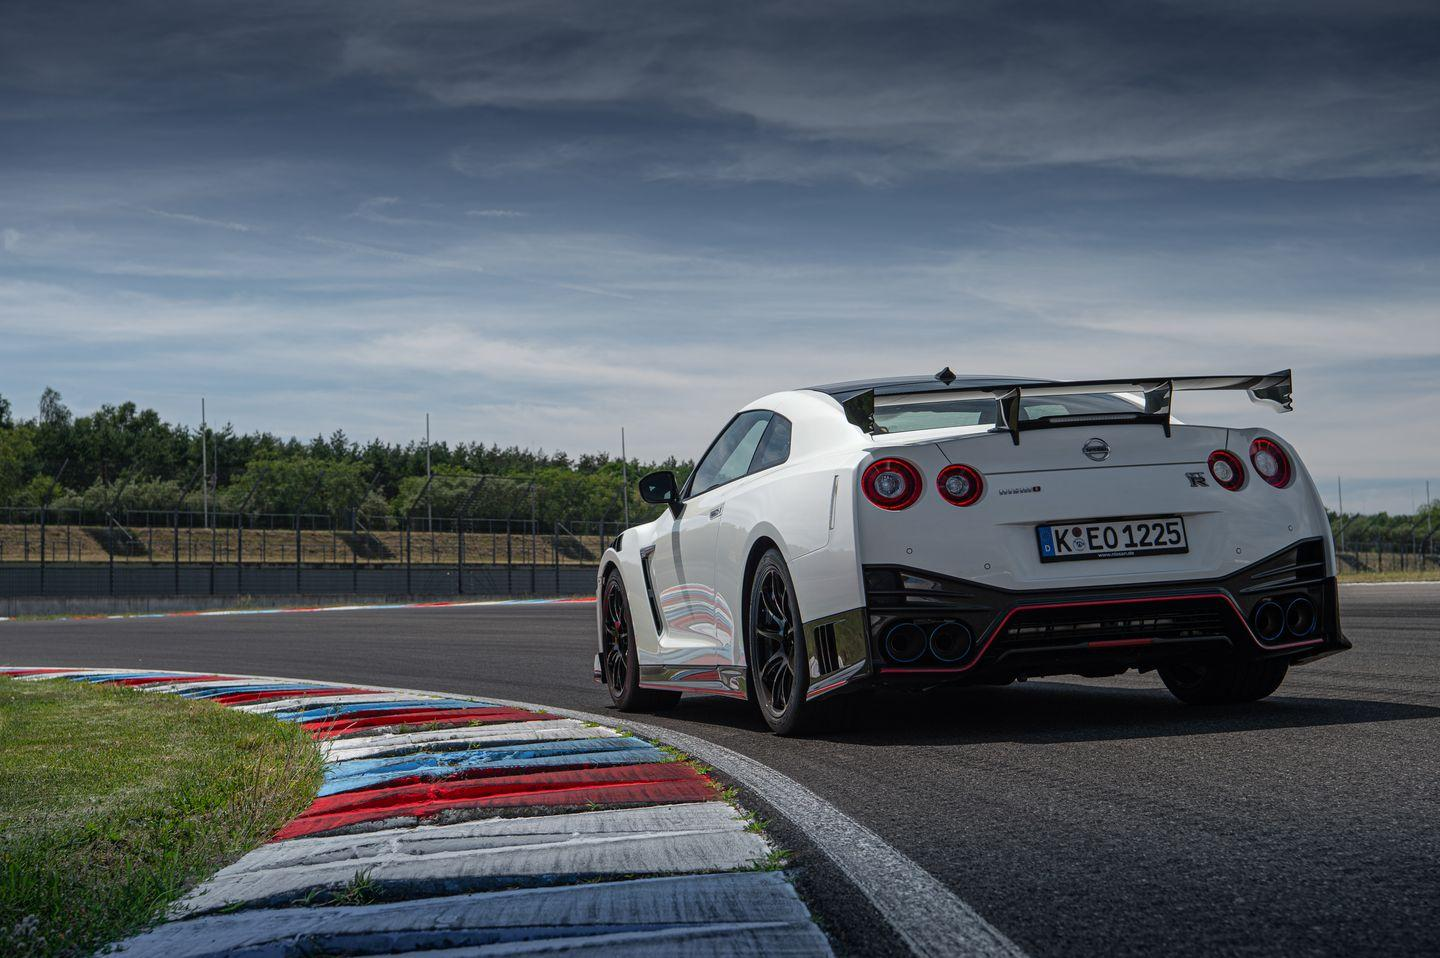 <p>NISMO (and Track) models of the GT-R have fenders flared to accommodate wider tires than standard.</p>